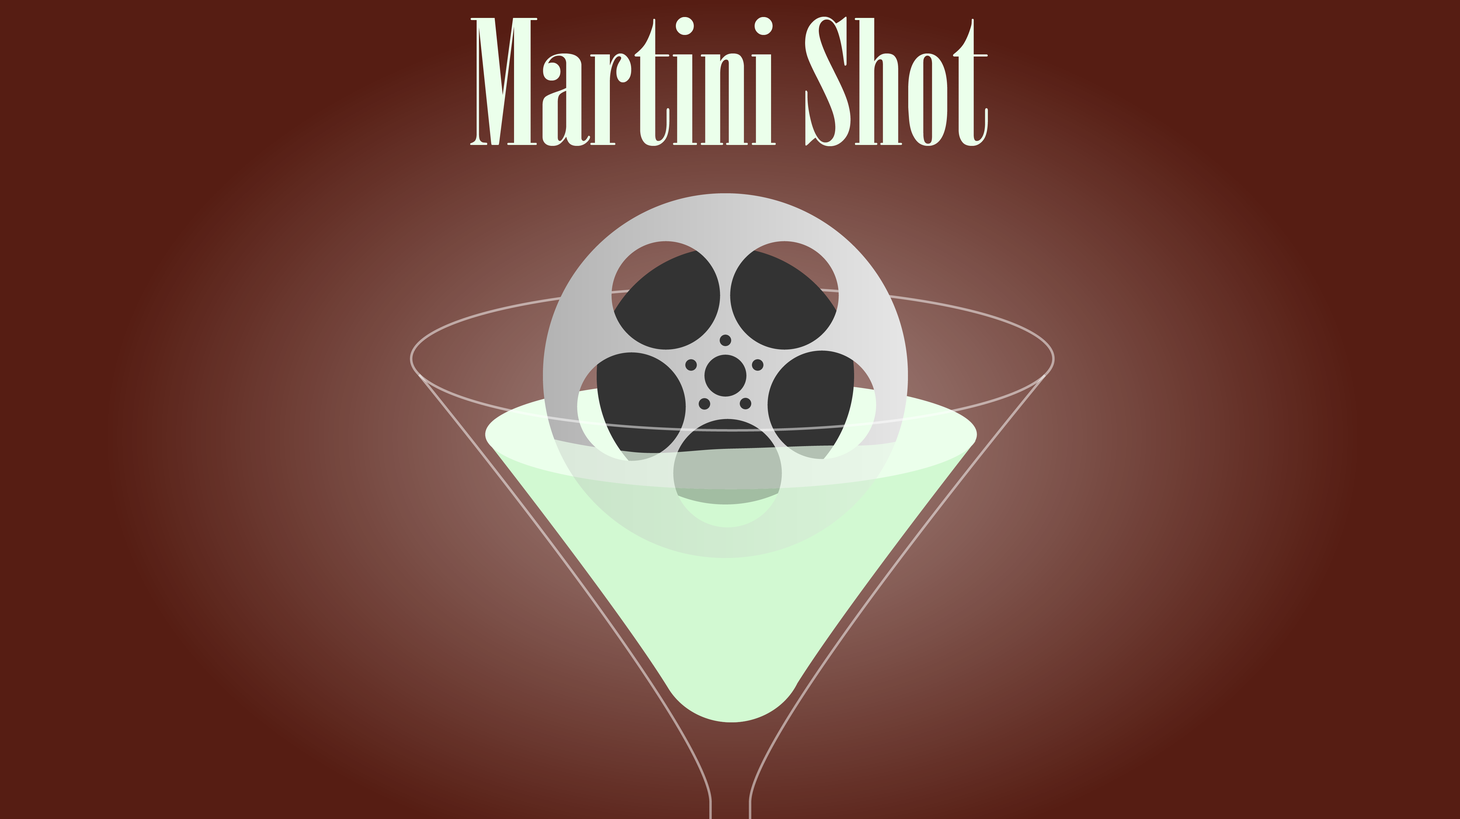 This is Rob Long and on today's Martini Shot I'd like to get a lot done this week but of course I can't because it's the holidays and it's hard to get anyone's attention until after the holidays when it's crazy because we just got back from the…